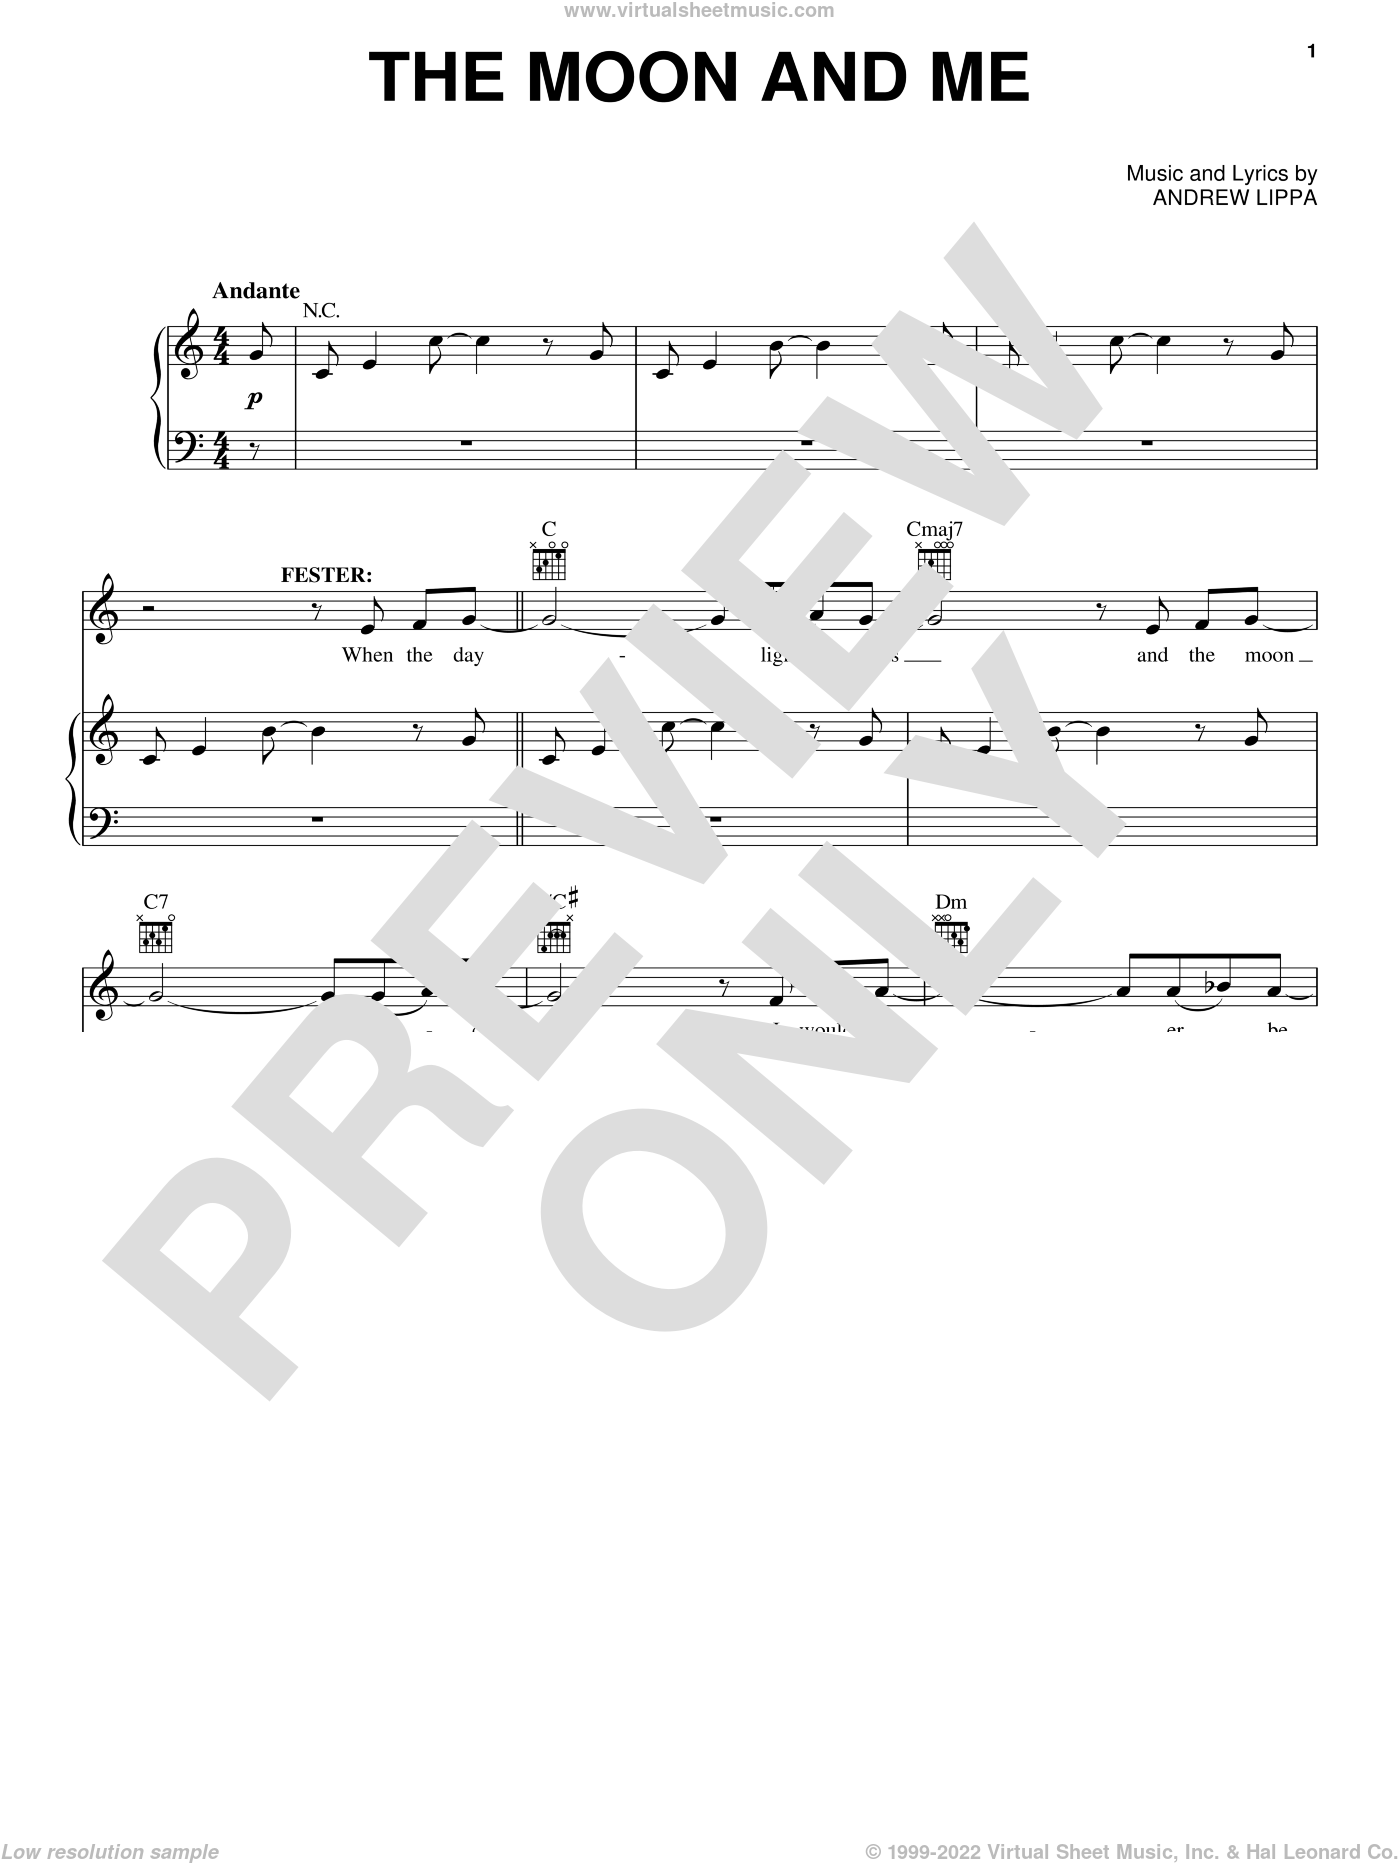 The Moon And Me sheet music for voice and piano by Andrew Lippa. Score Image Preview.